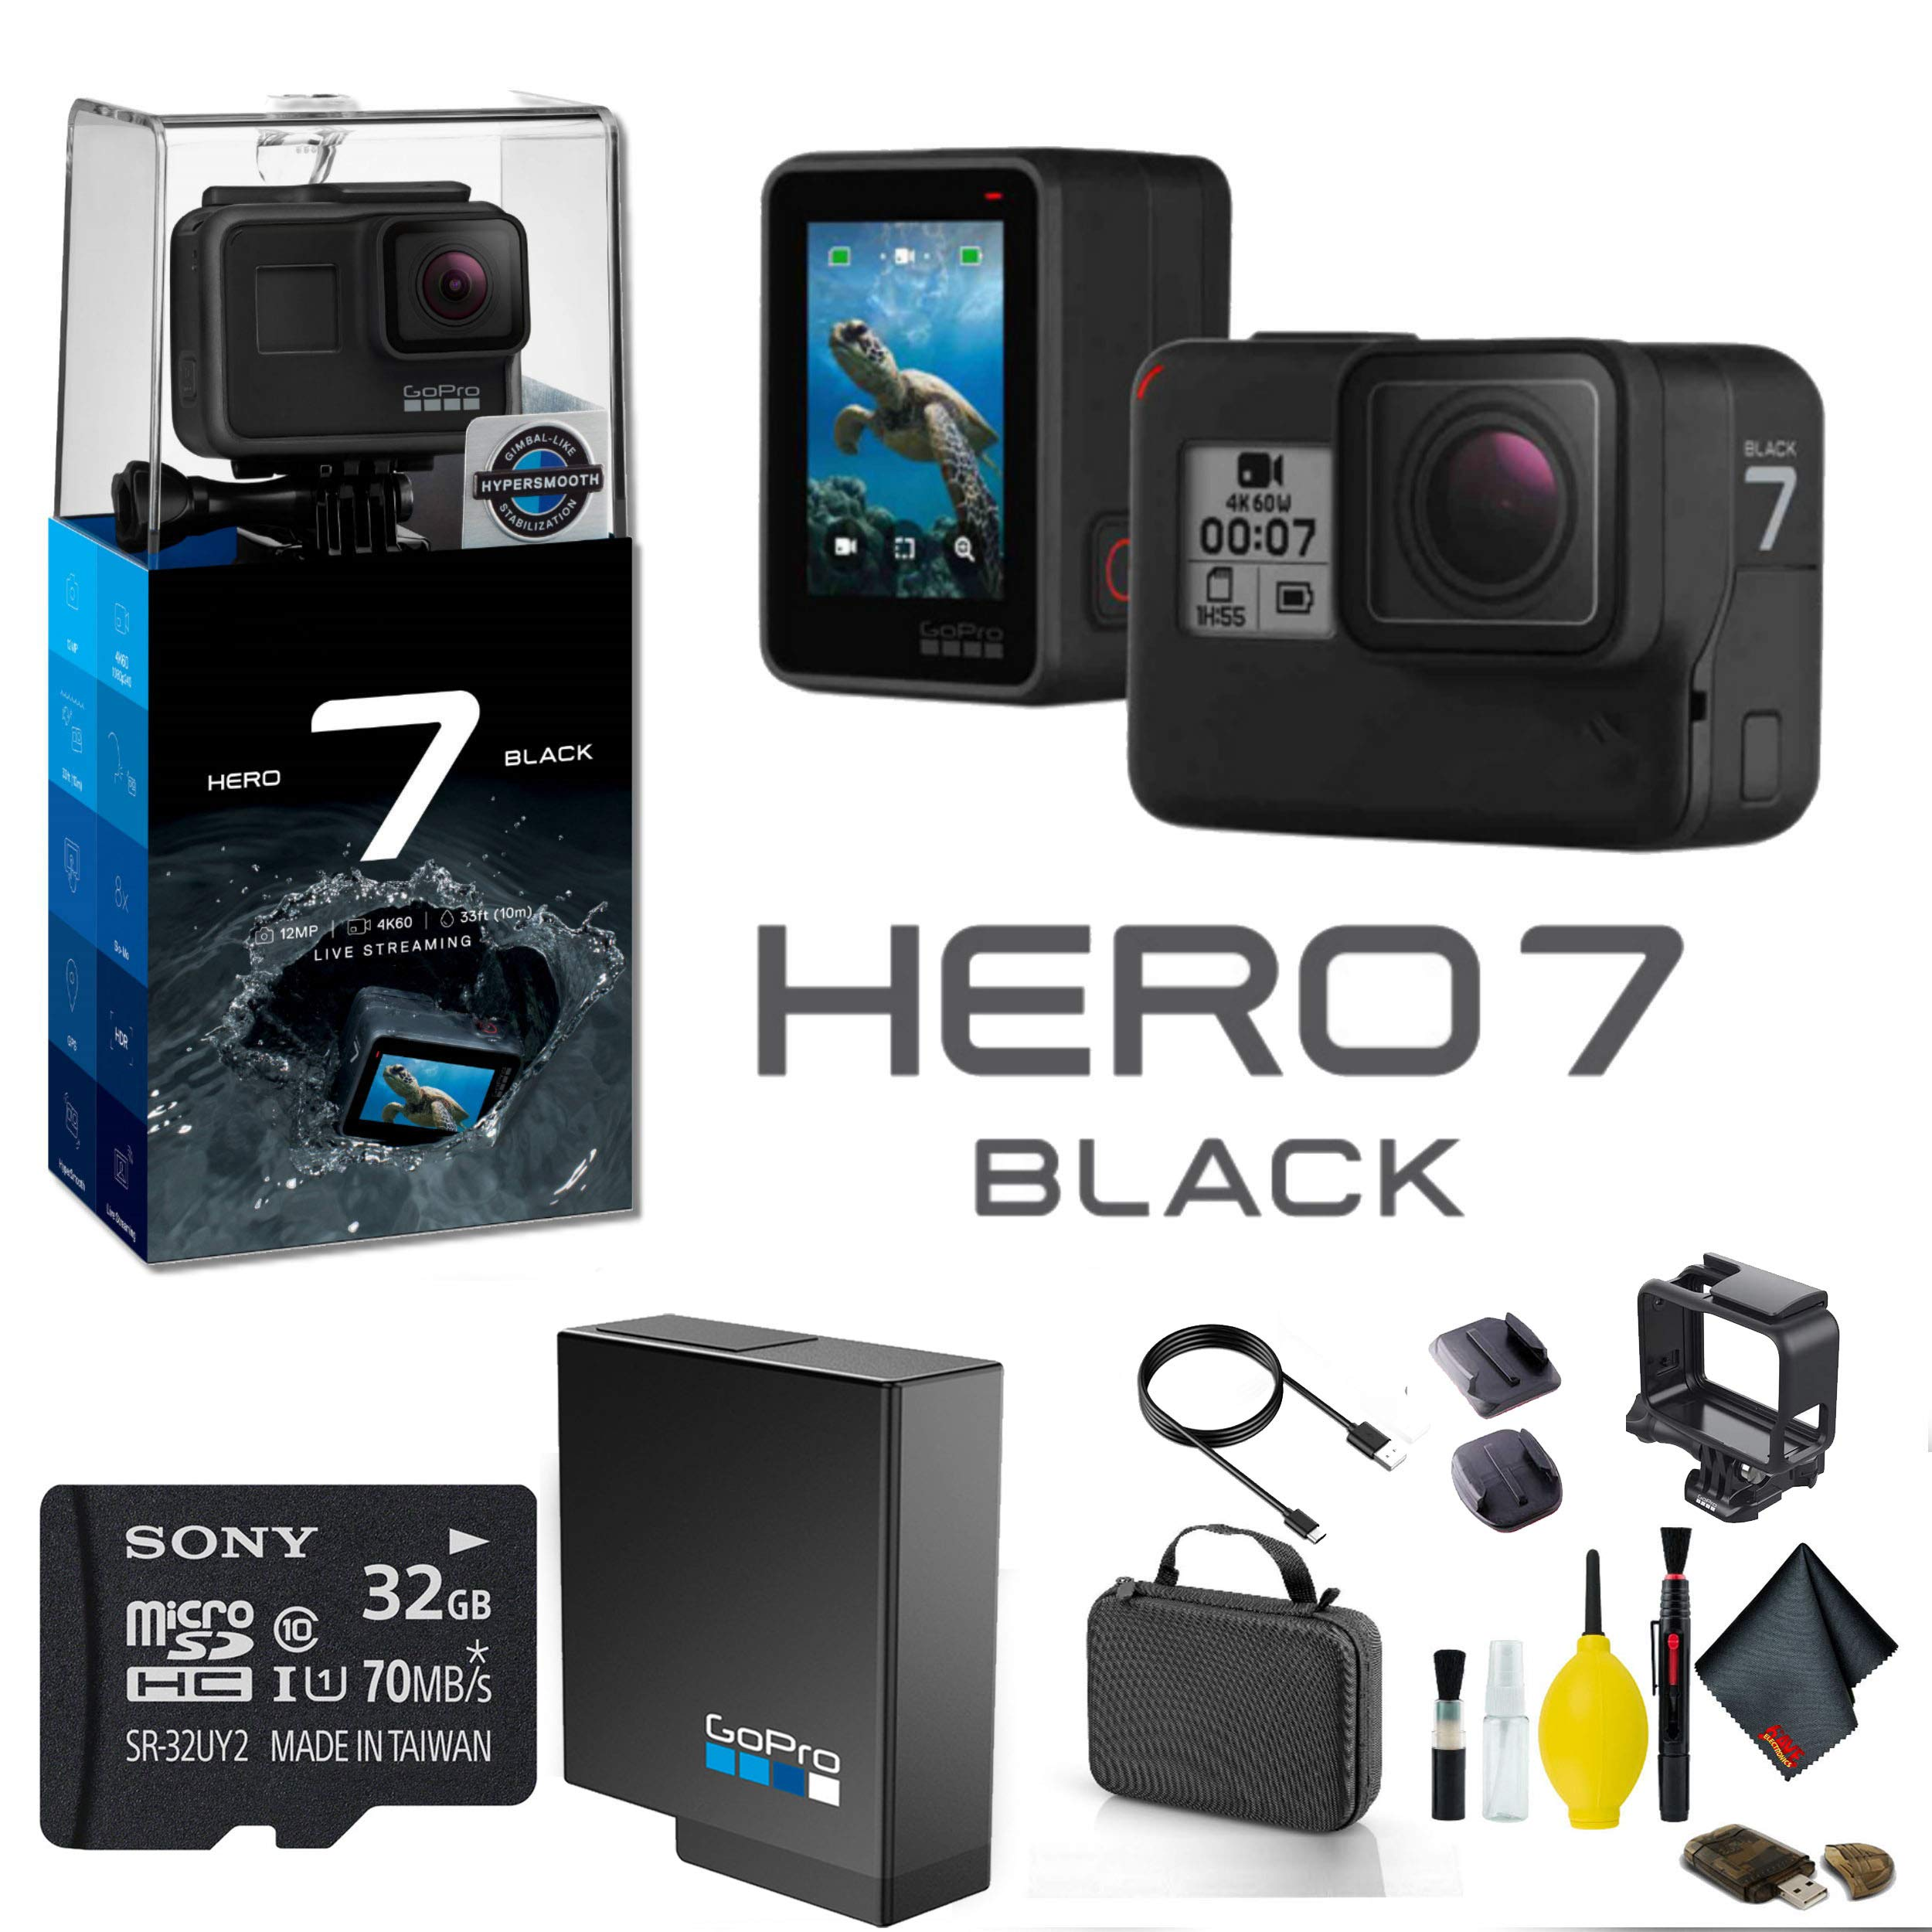 GoPro HERO7 Black Action Camera with 32GB Memory Card Case Cleaning Kit and More - GoPro Bundle